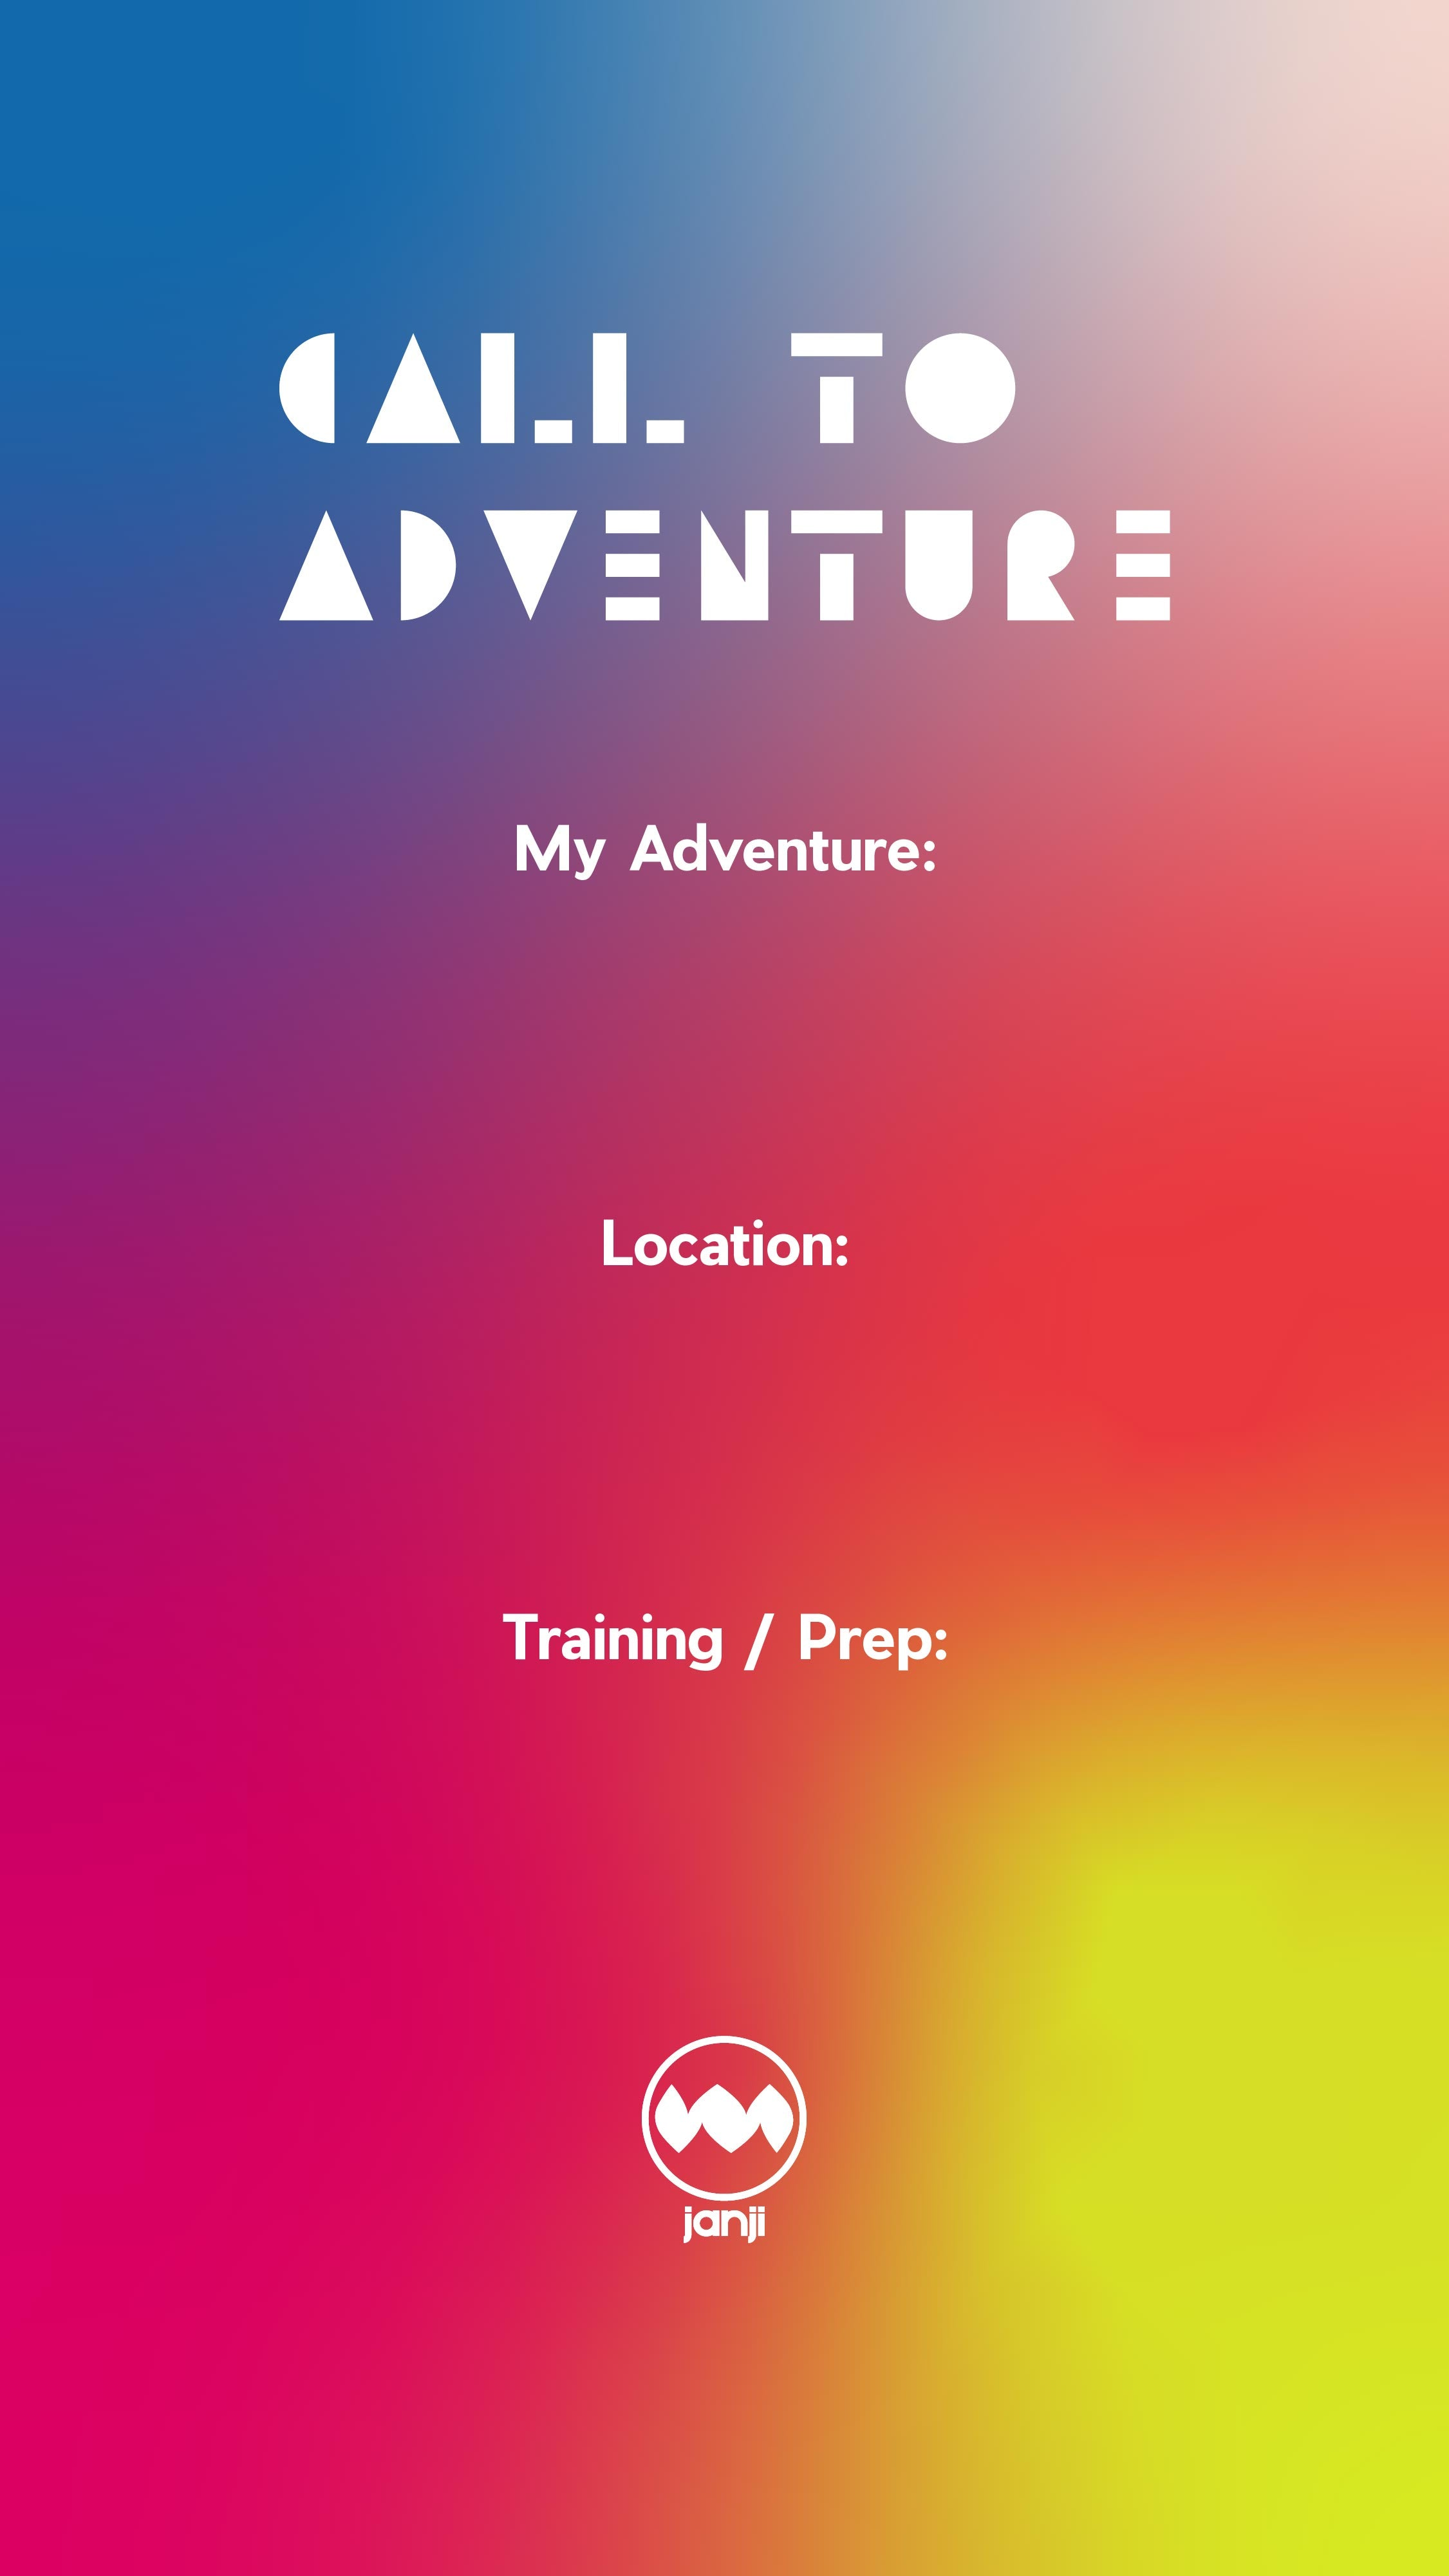 Template for social media with a gradient background and three categories; My Adventure, Location, Training/Prep